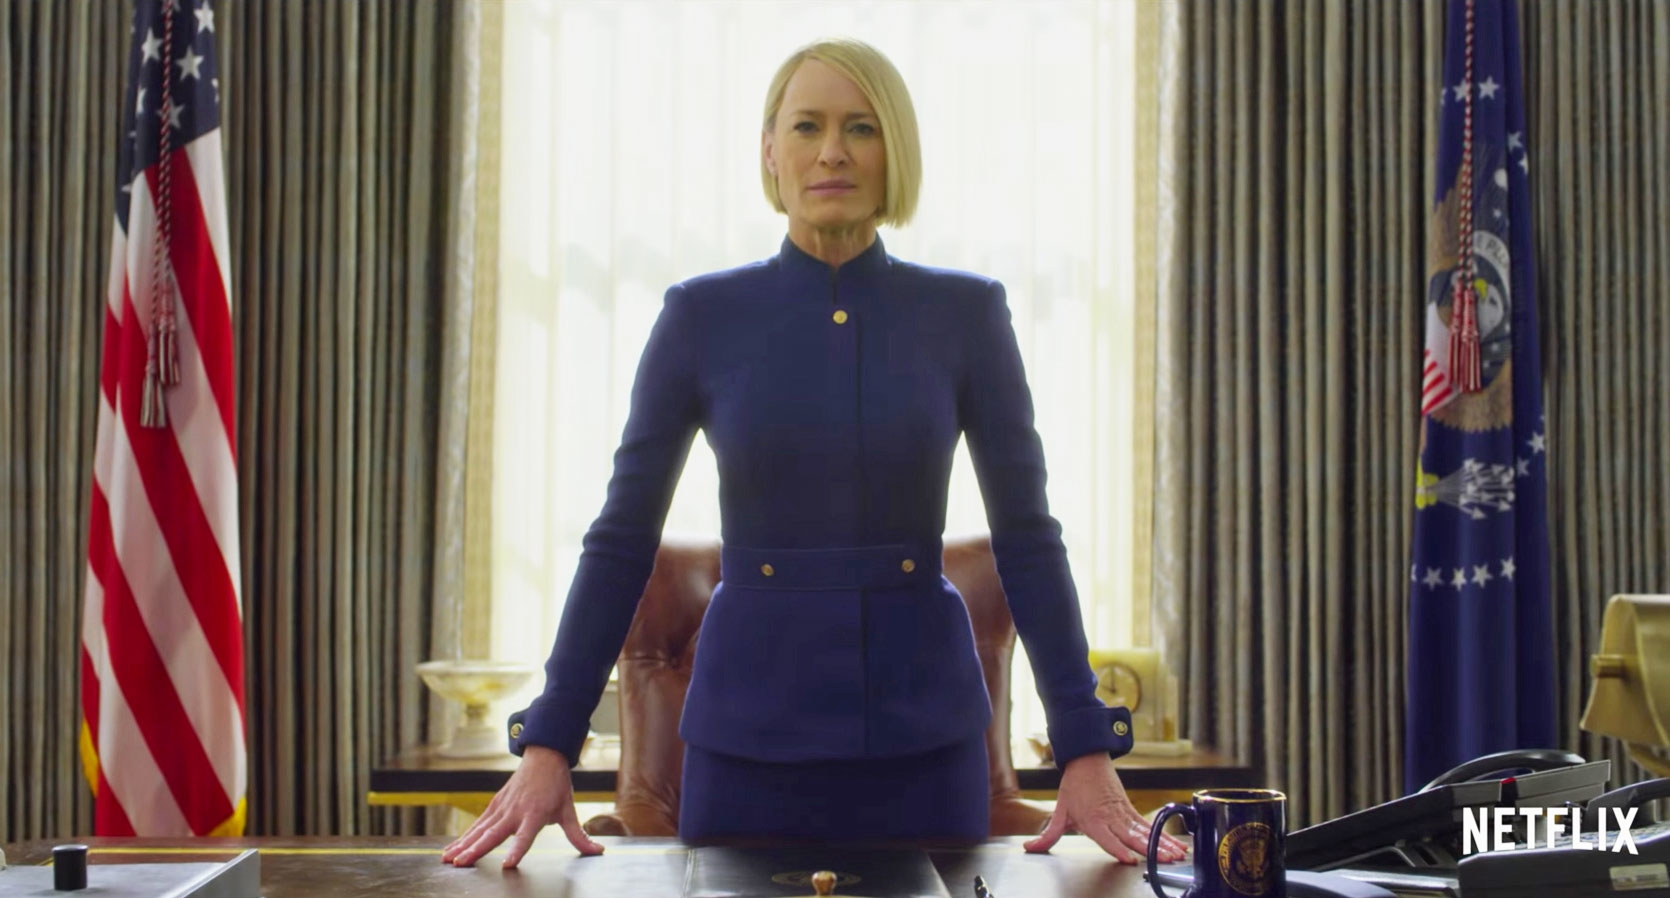 'House of Cards' teaser shows Claire Underwood taking charge | DeviceDaily.com